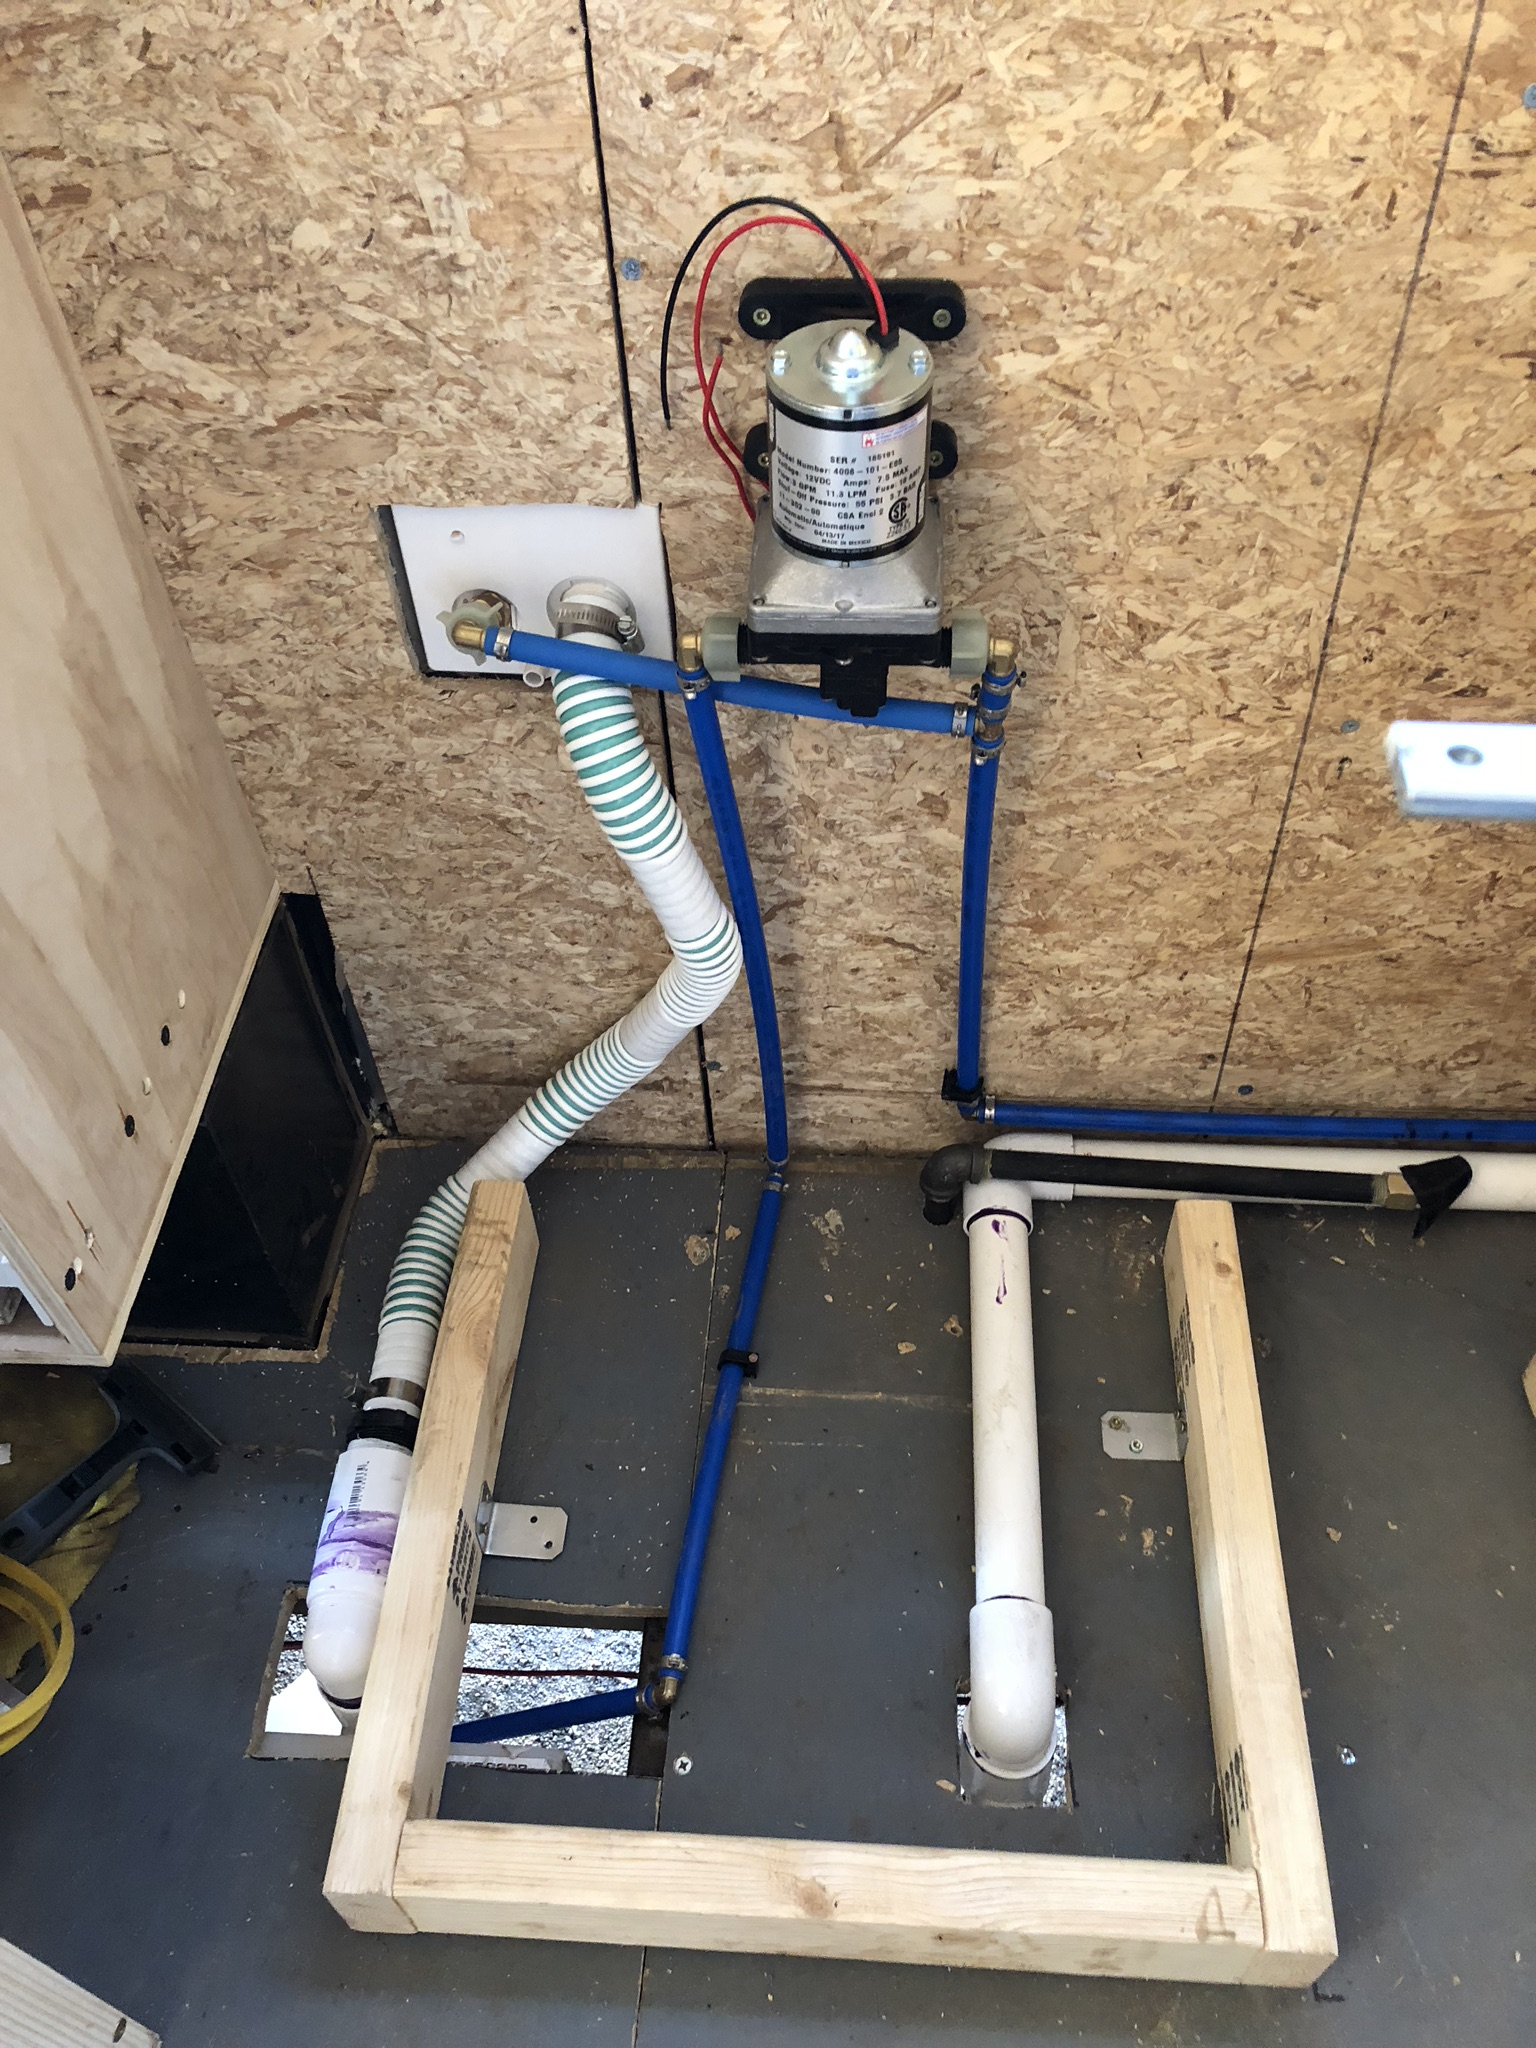 Fully assembled - Water comes in from the inlet, goes straight to tank, then gets pumped out and pushed to the sink and shower and hot water heater. Also can be bypassed by a waterline with pressure in a campground or house.You can also see the gas line coming up from the underside.